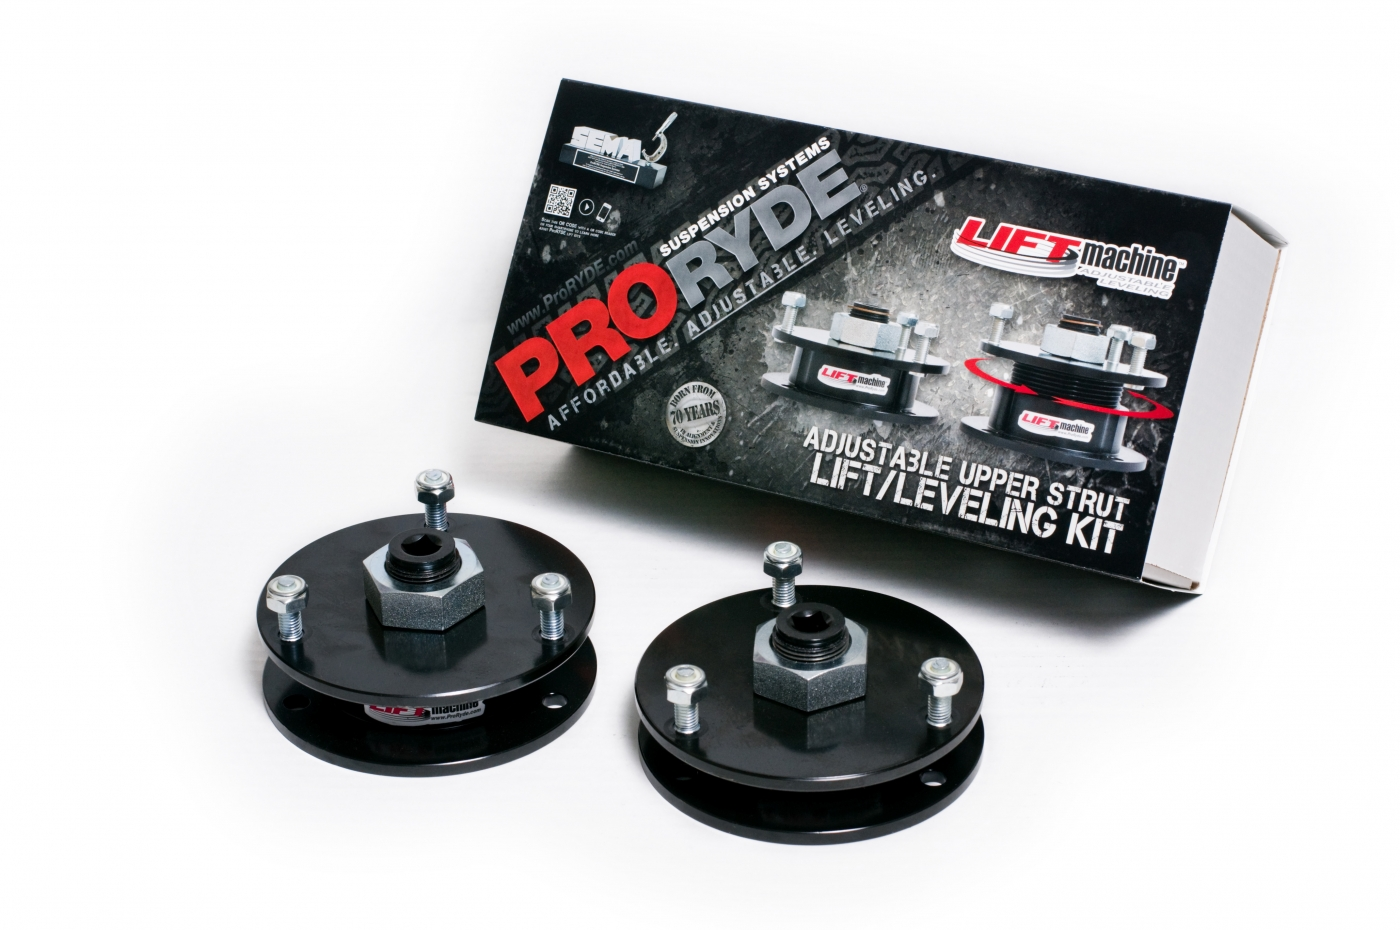 CHEVROLET GMC LD 1500 TRUCK & SUV ADJUSTABLE FRONT LIFT LEVELING KIT  -GMT900-